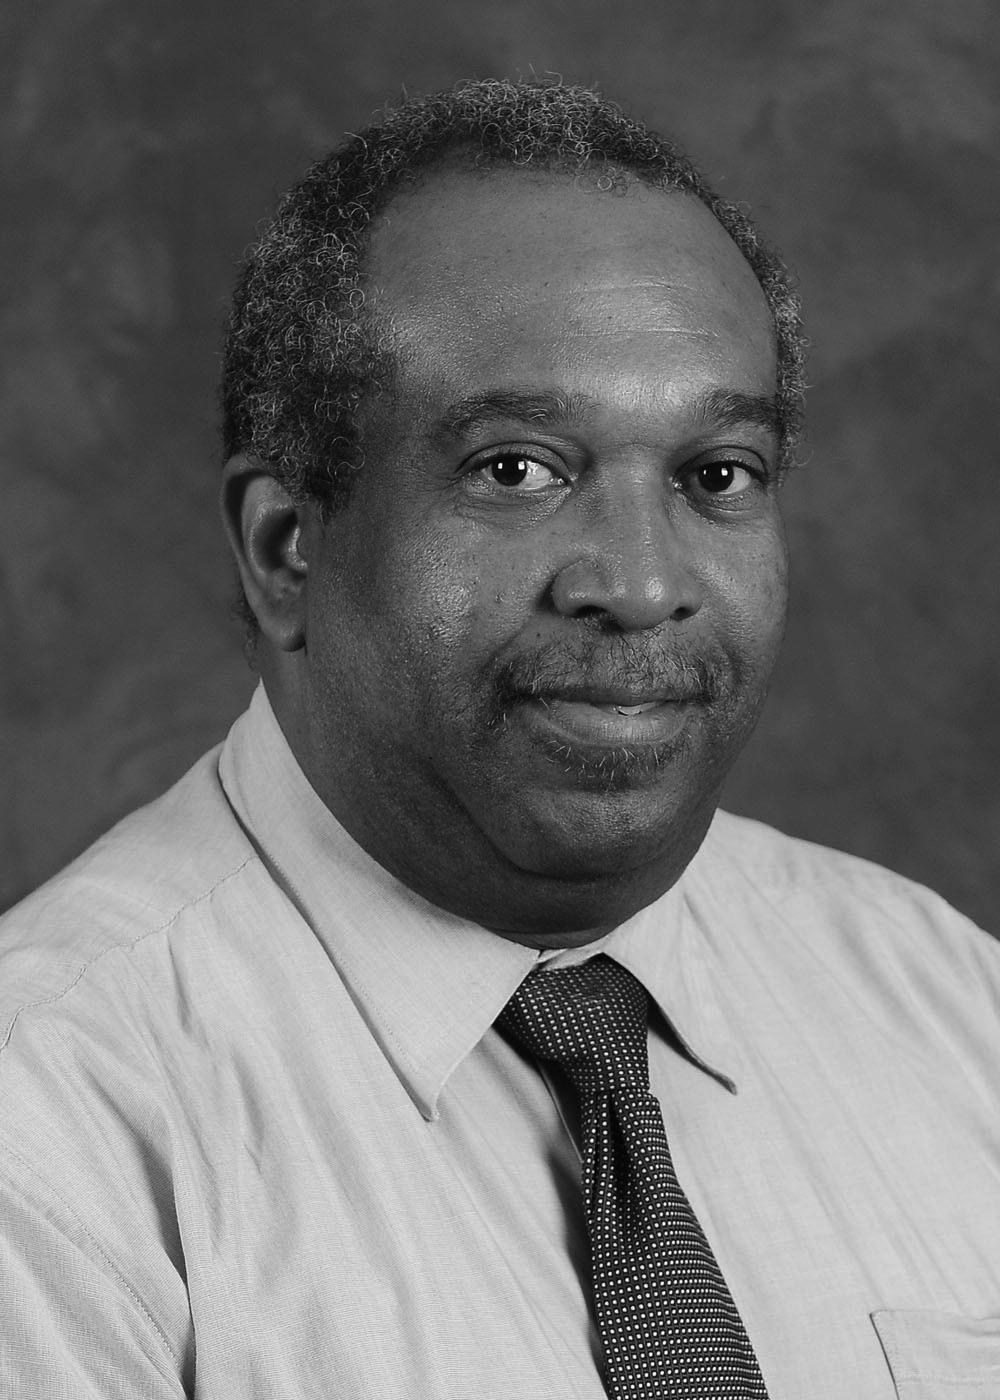 Henri Ménager, RN, BSN KDHE H enri Ménager received a degree of Doctor in Medicine from the State University of Haiti, School of Medicine and Pharmacy, in 1986.